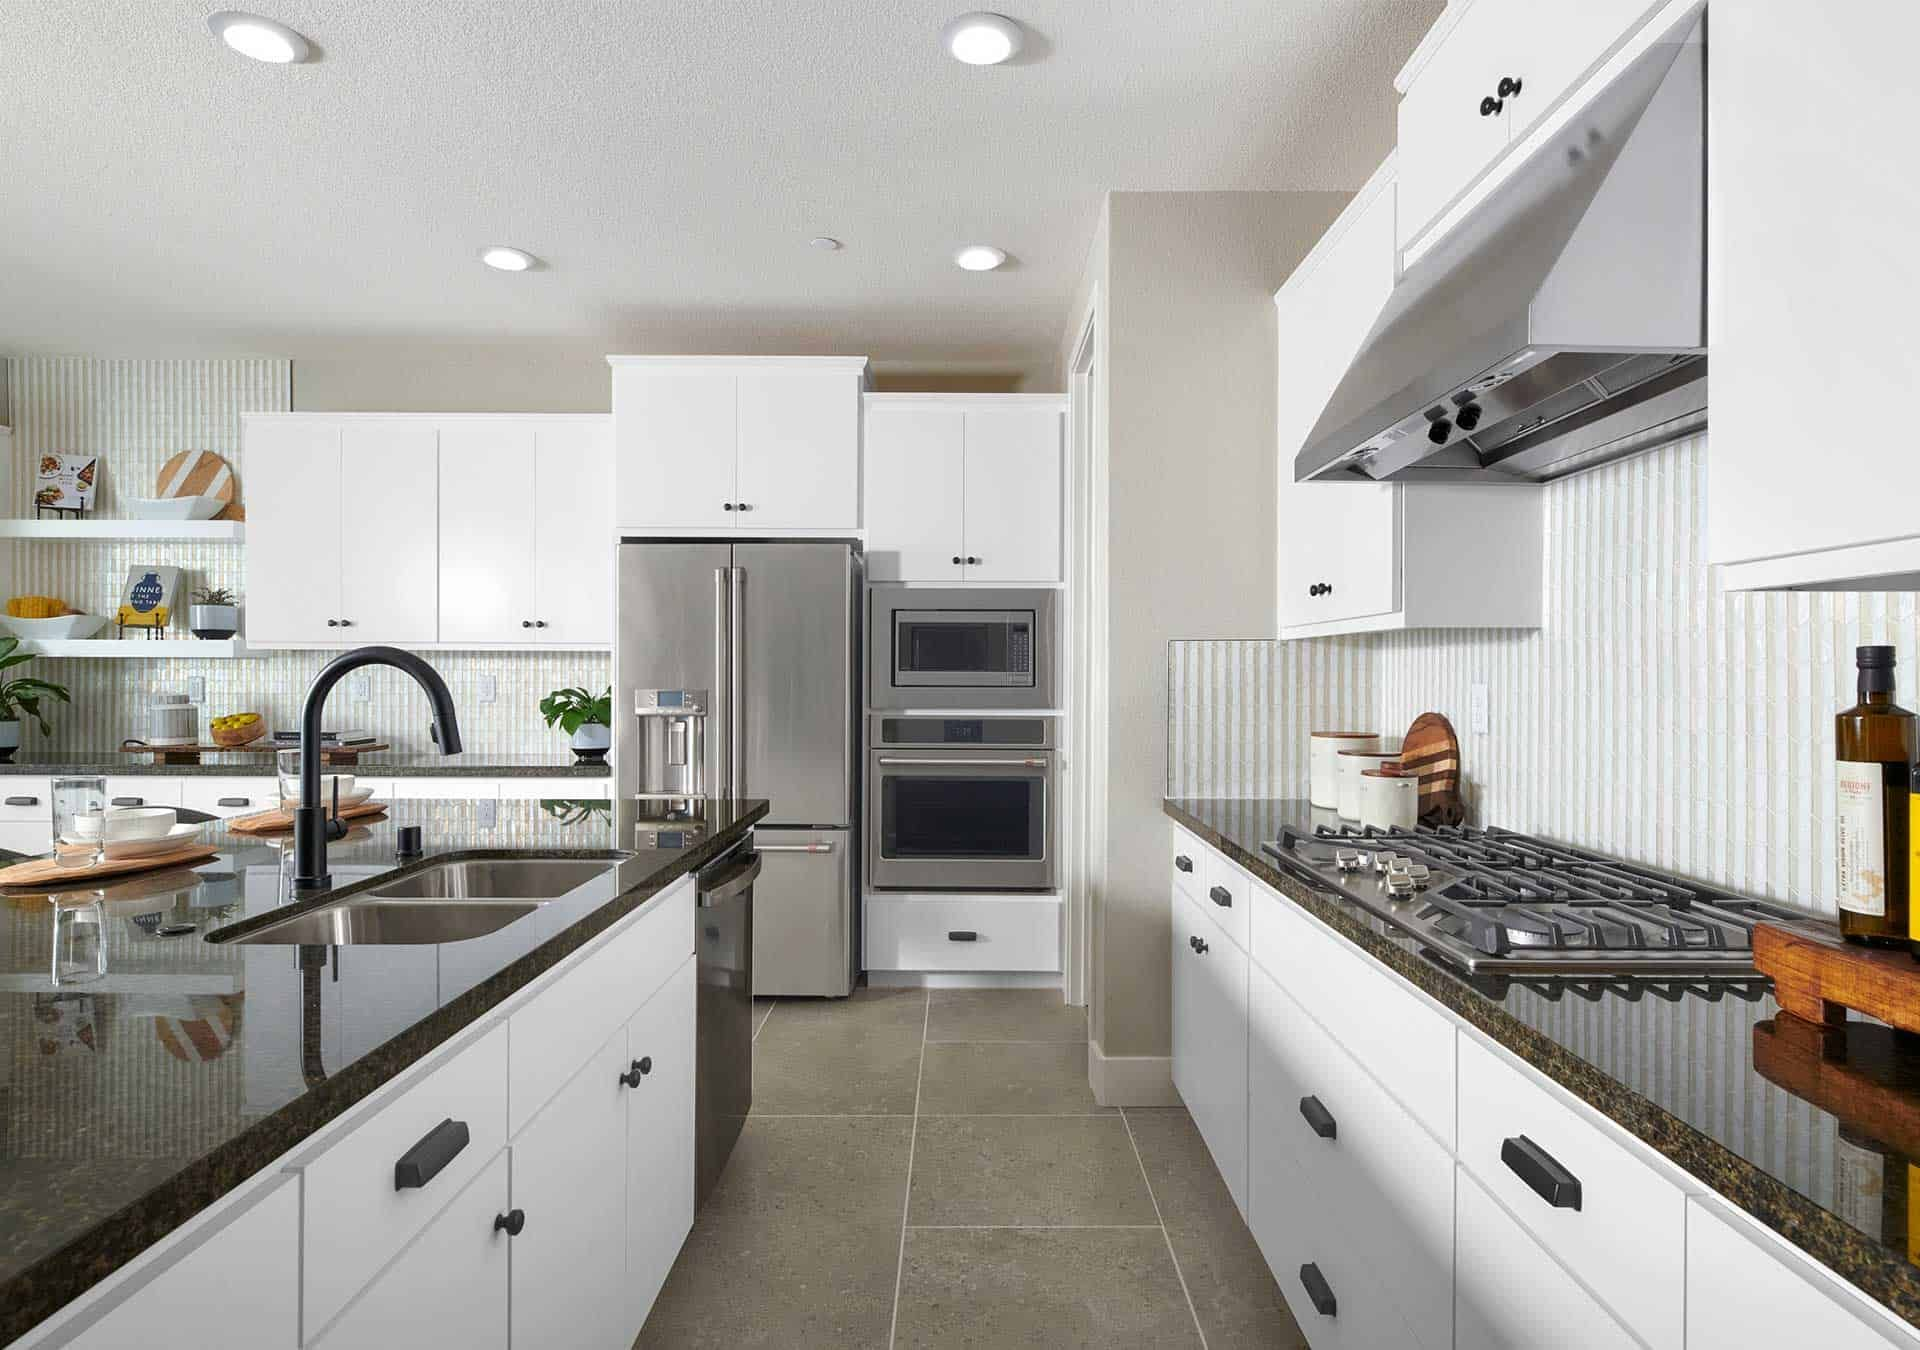 Kitchen featured in the Plan 2 By Tri Pointe Homes in Vallejo-Napa, CA